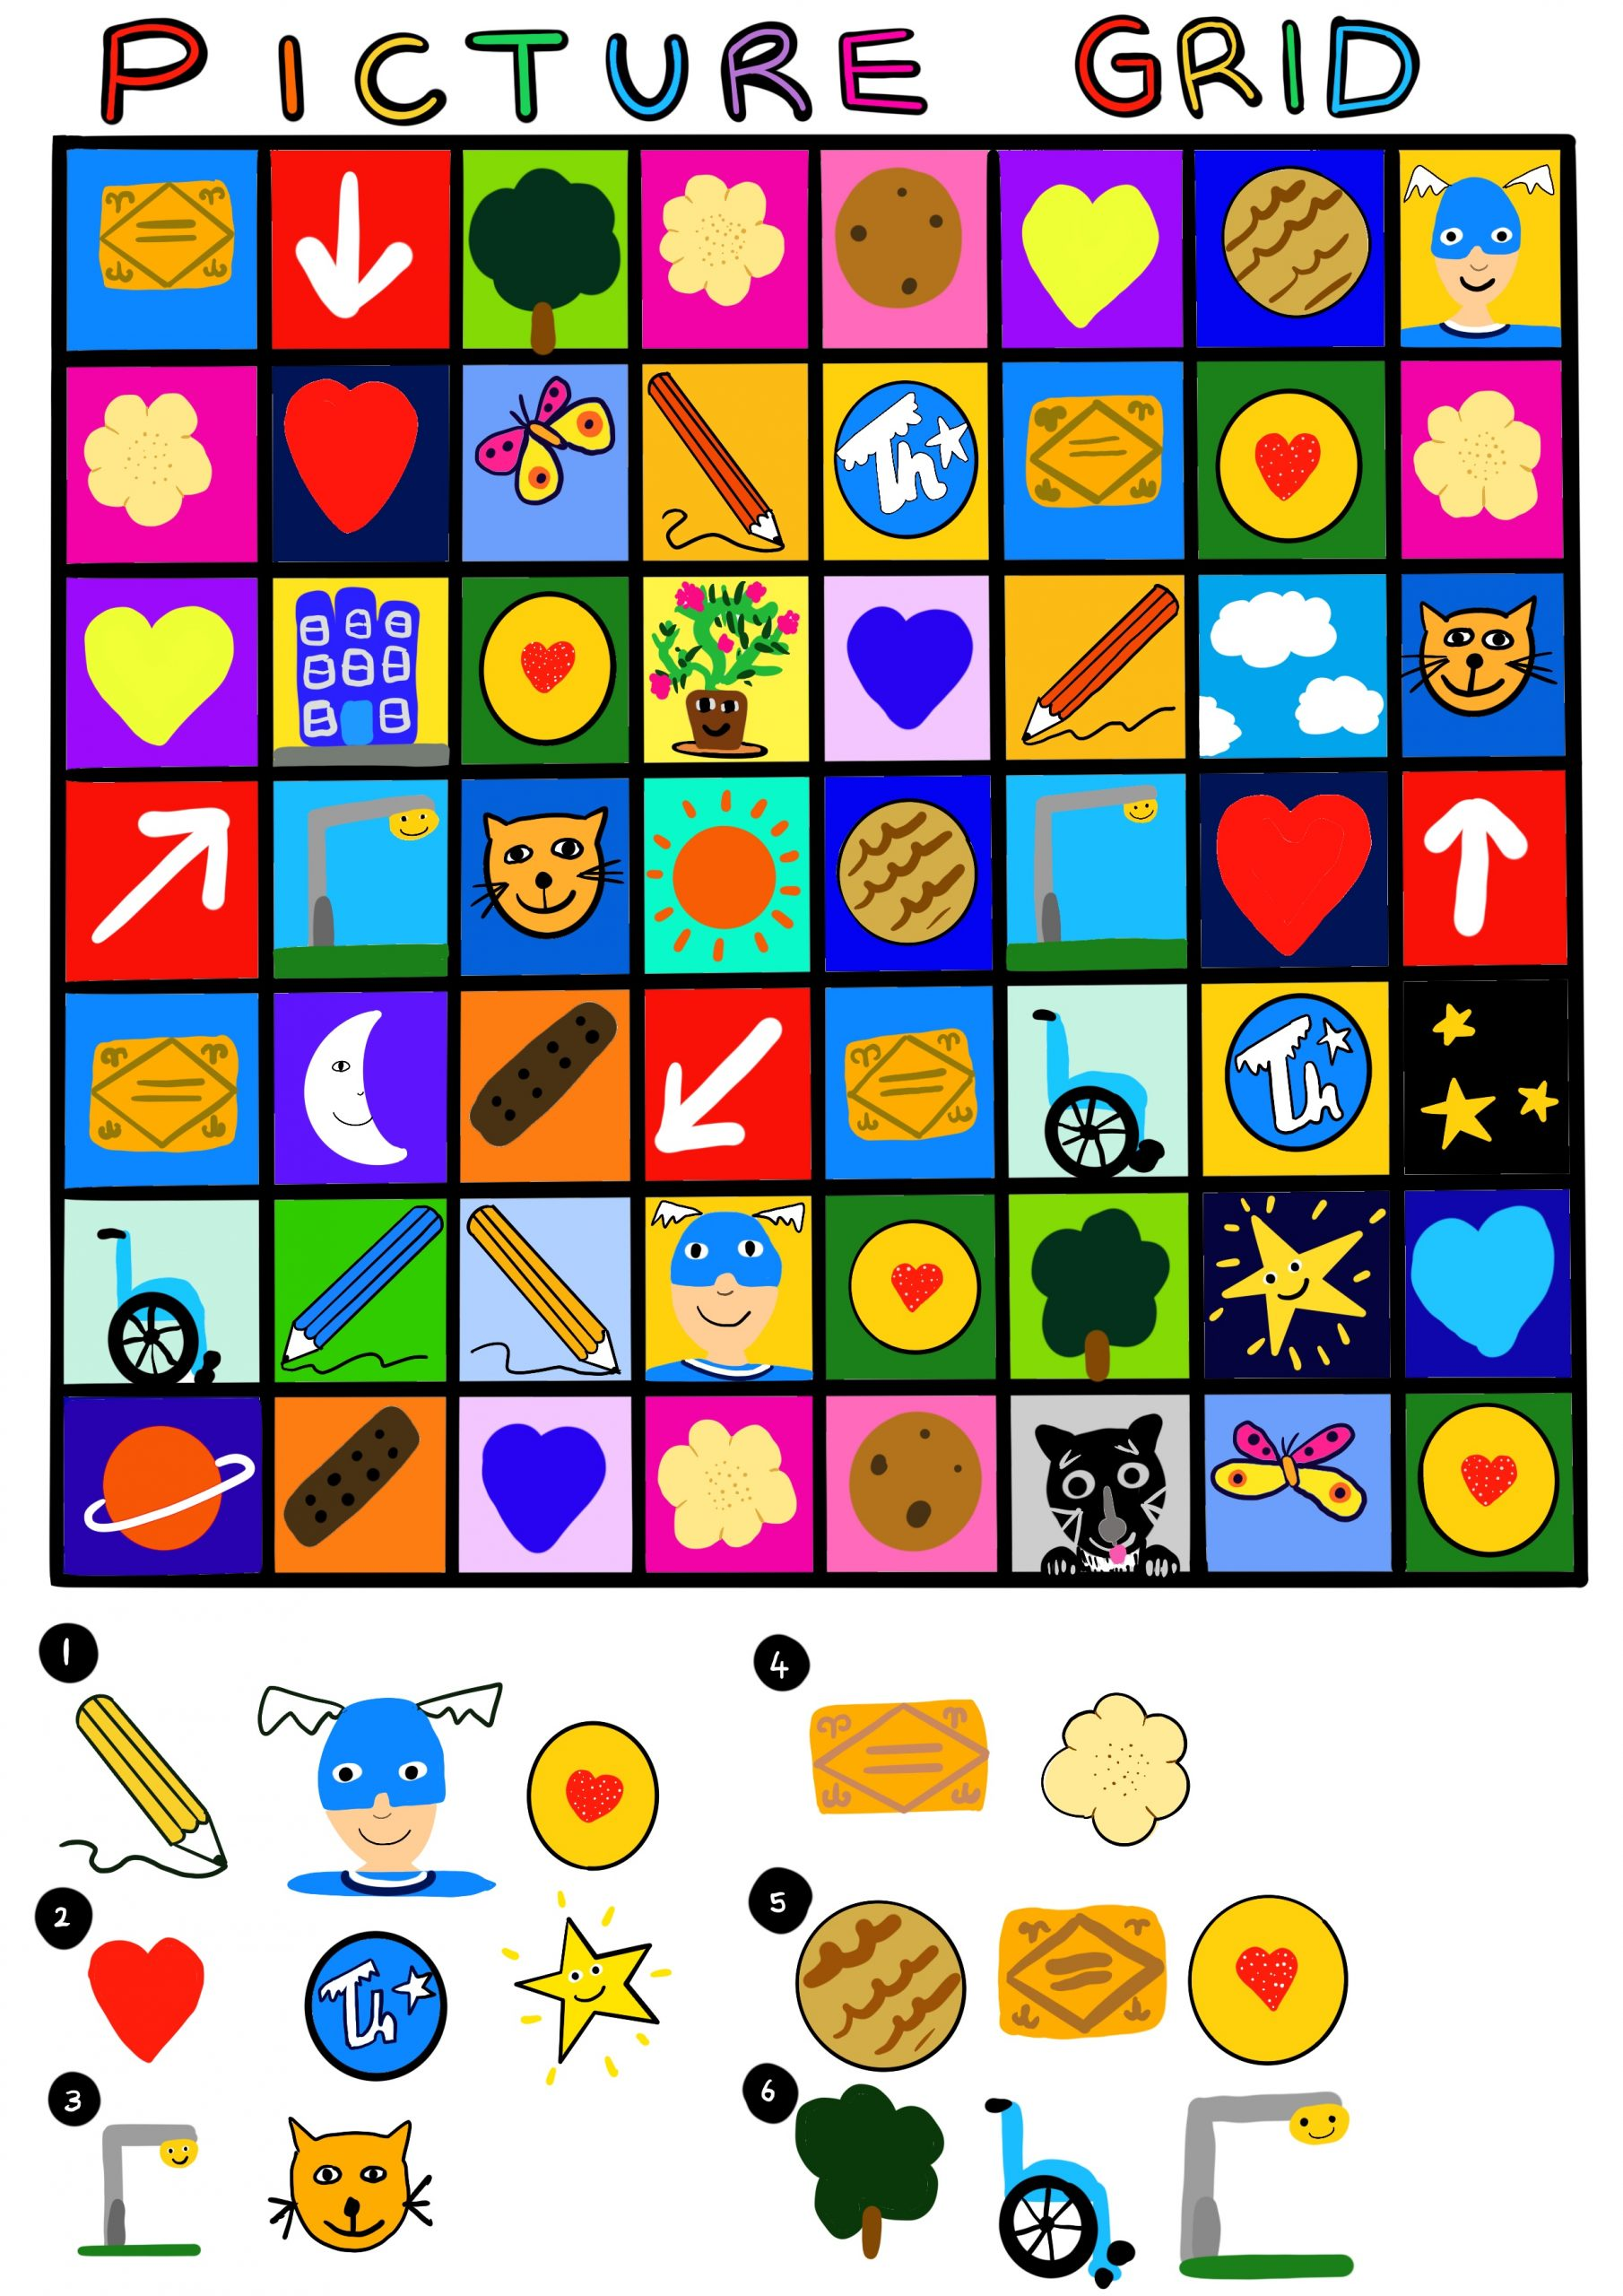 Image shows a digital drawing of a simplified version of Touretteshero's Picture Grid Search. Image shows a 8 square x 7 square grid with each different coloured square containing a drawing from something related to Biscuit land such as the lamp post, a biscuit, a wheelchair and a geranium. At the bottom is a secret message waiting to solved.